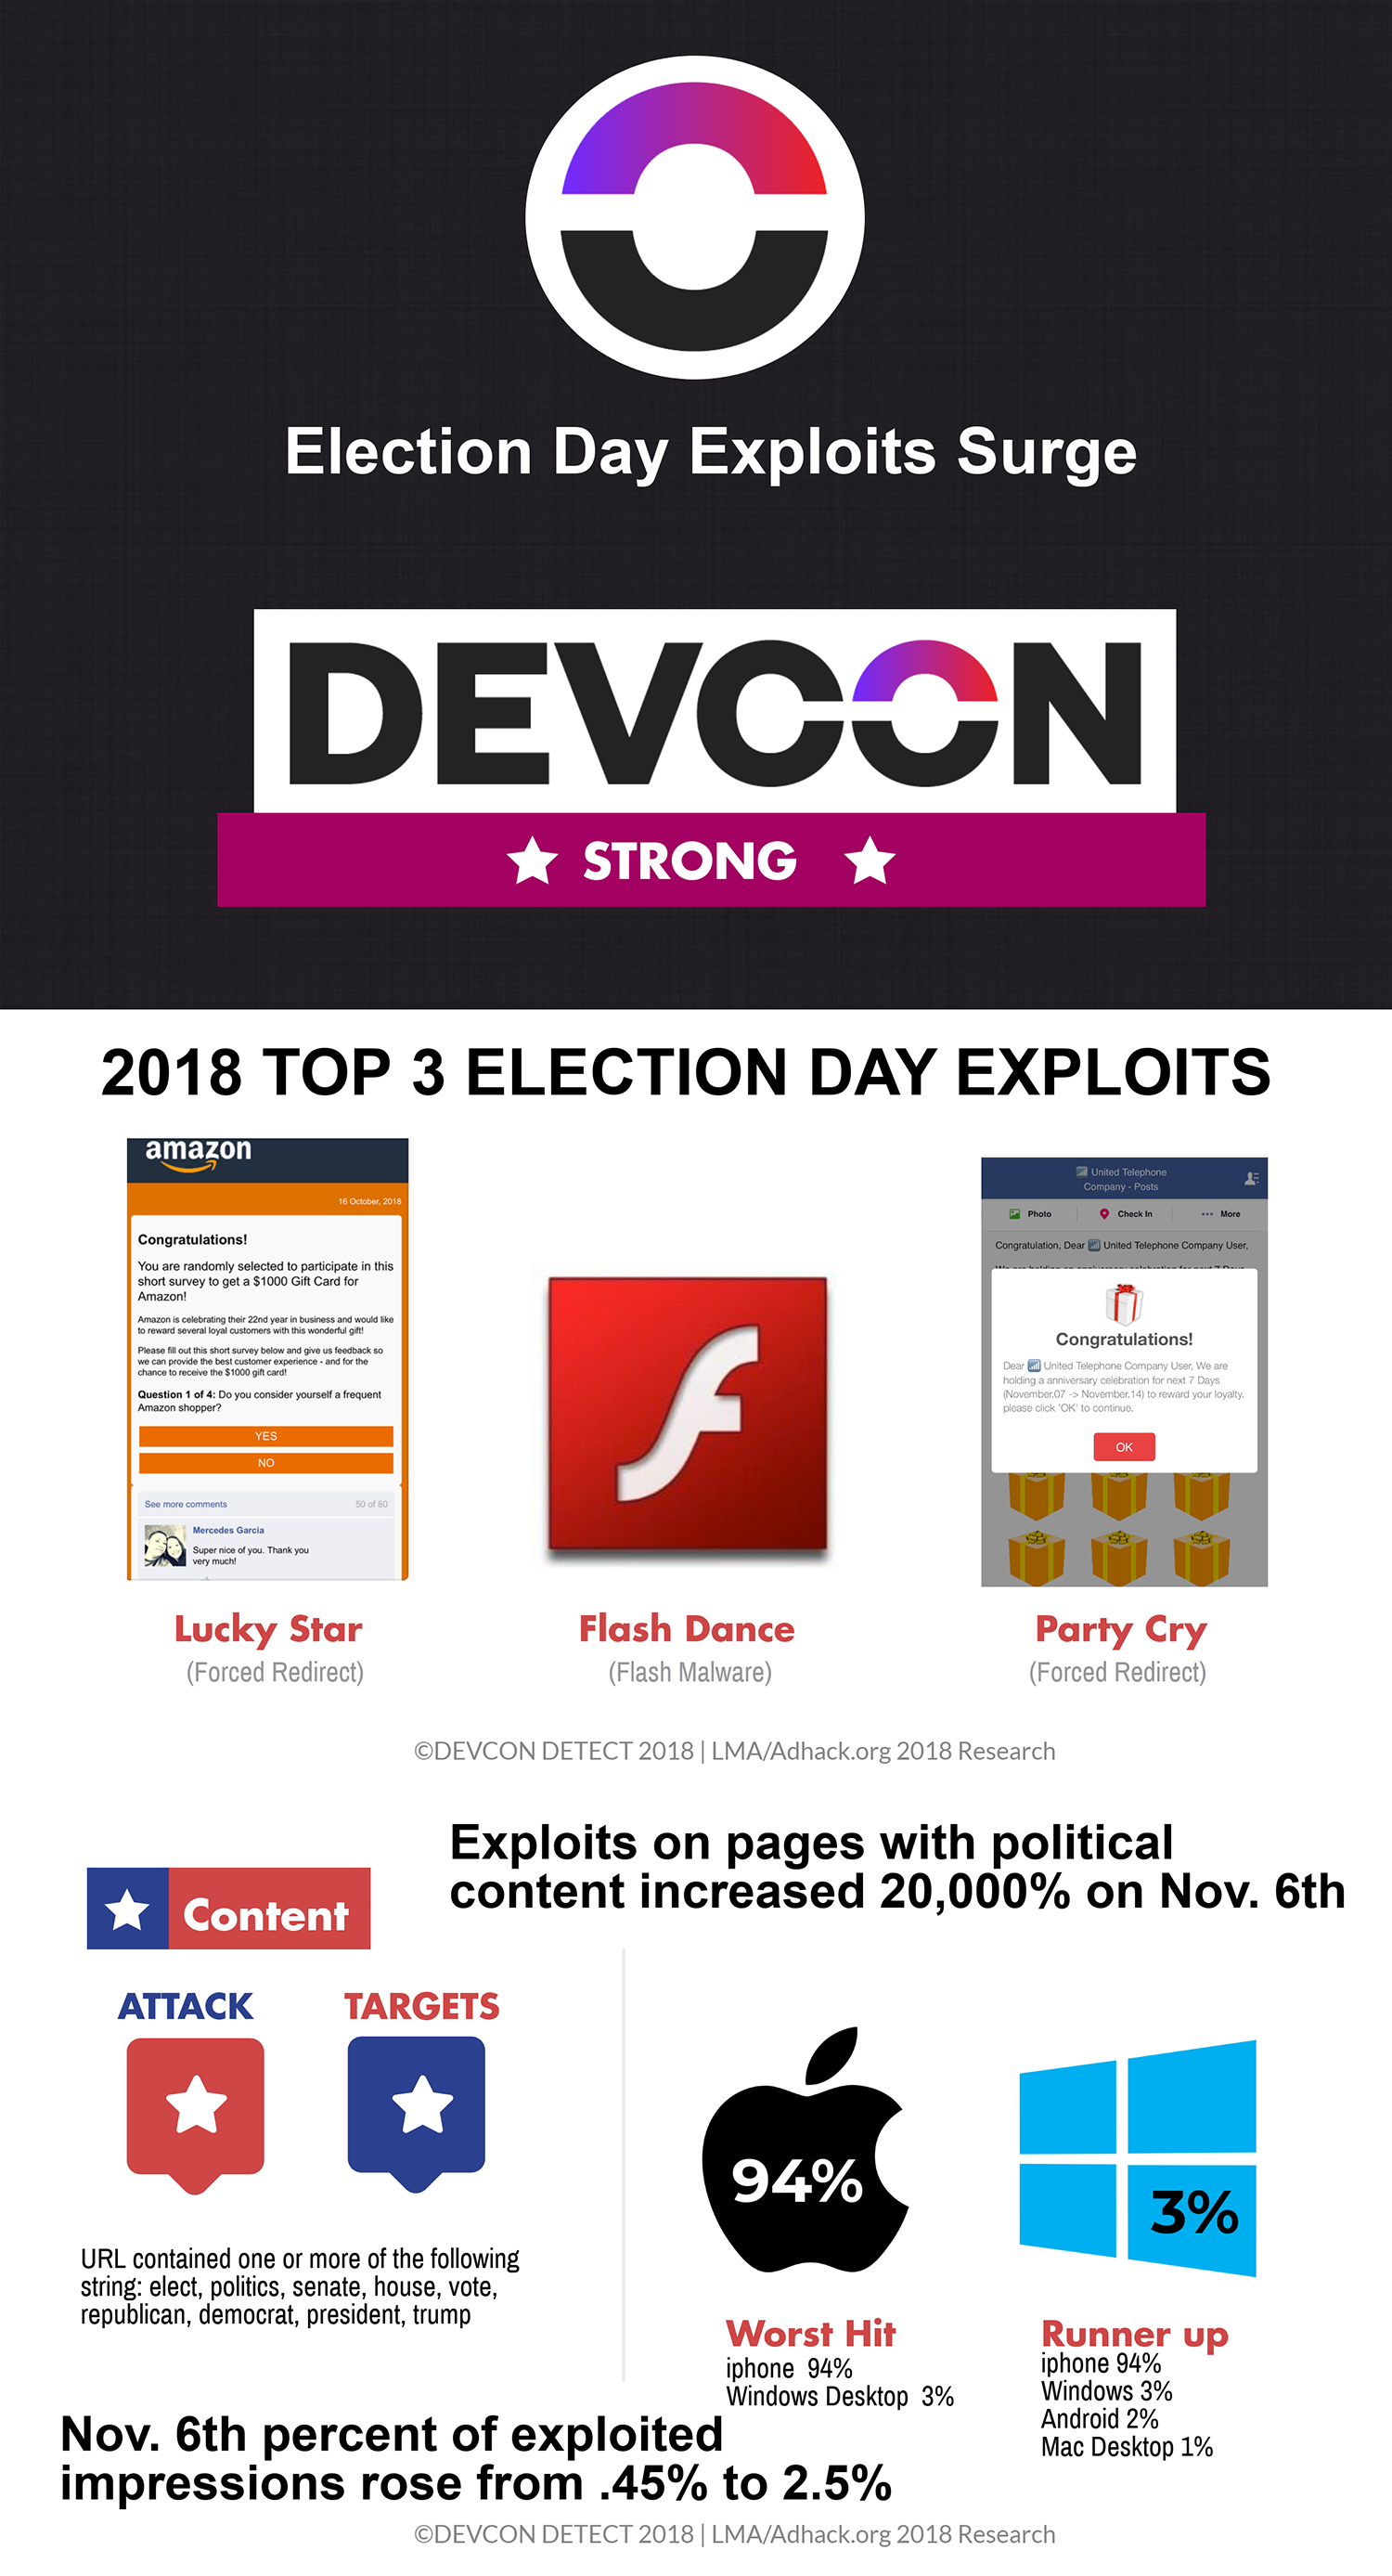 DEVCON+ad+fraud+research+election+day+2018.png